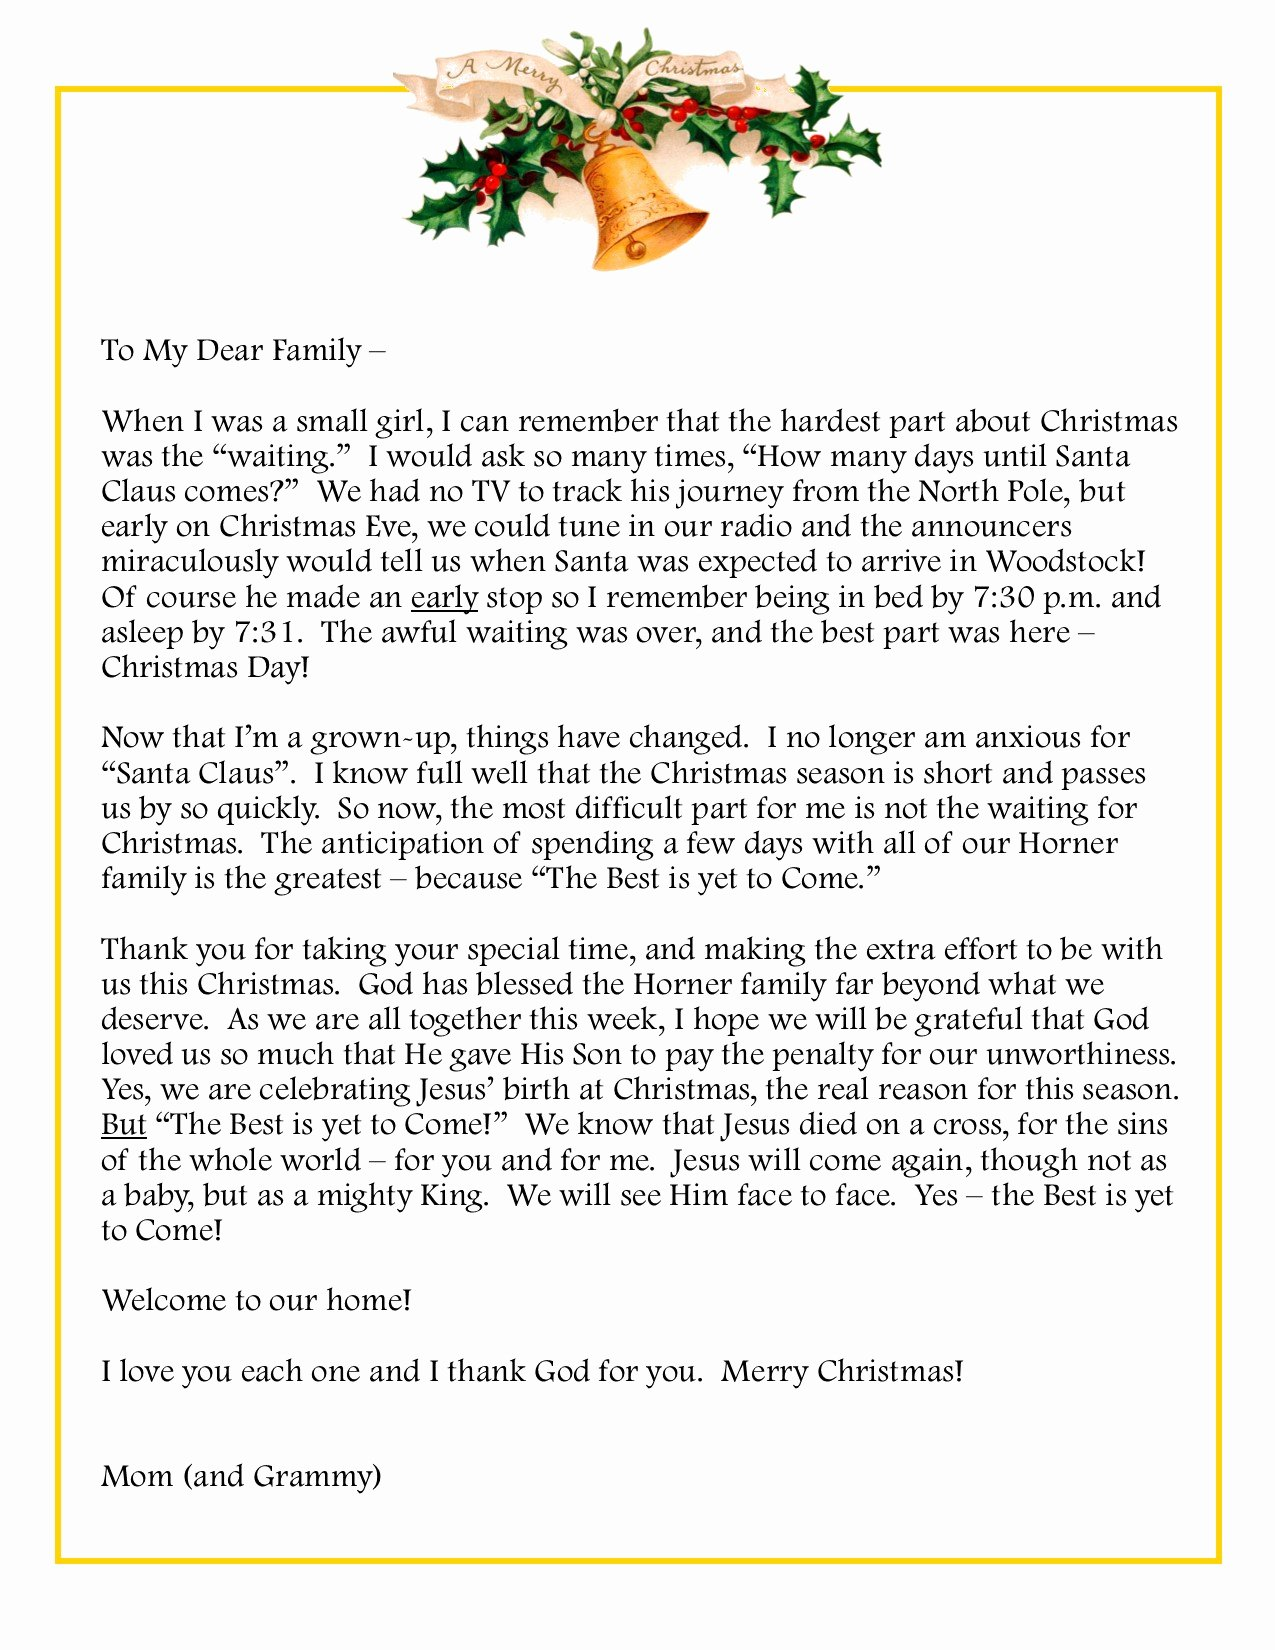 Family Christmas Letter Template Inspirational Family – Premier Designs Inc Blog